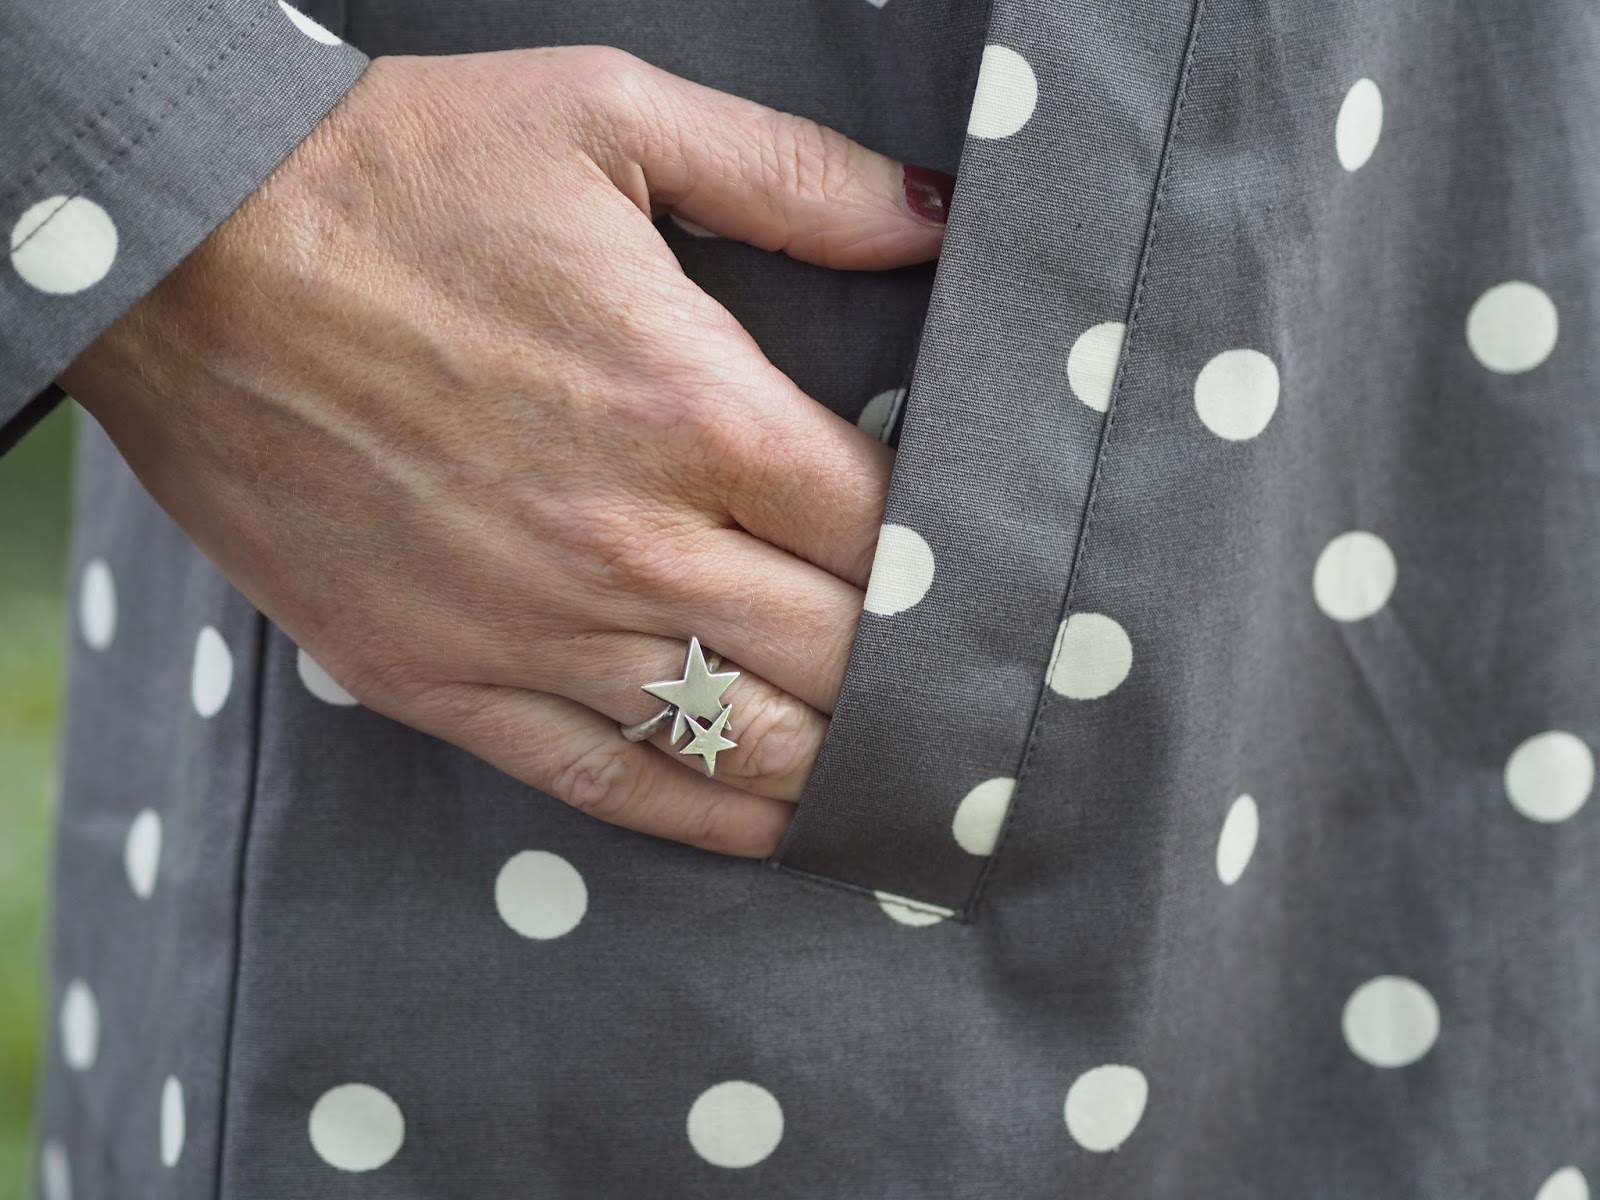 Tulchan grey spotted raincoat, grey breton and grey jeans, Danon double stars ring